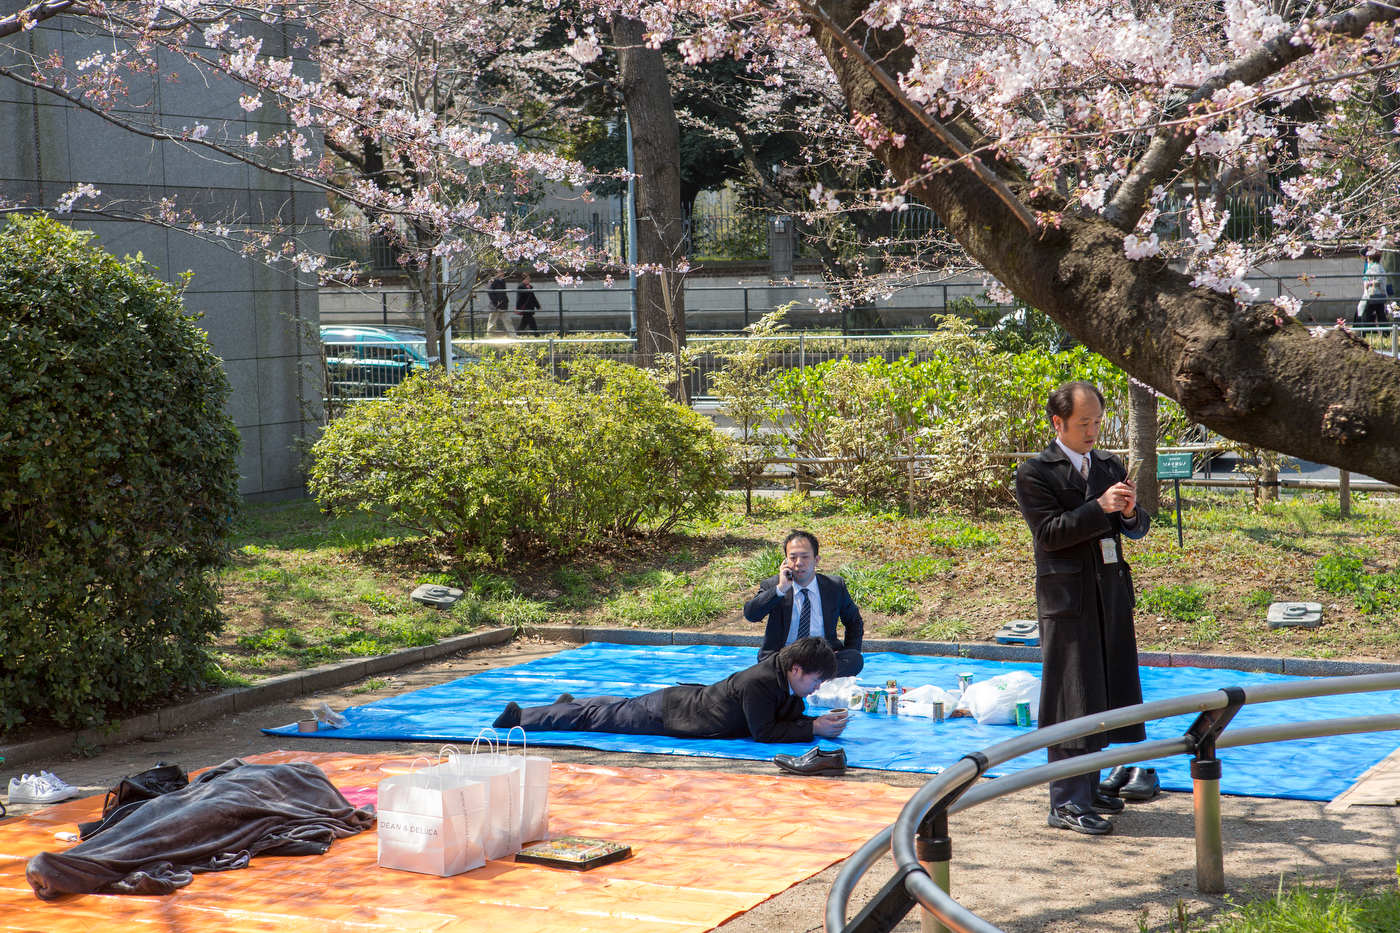 Salarymen get ready for lunch during Hanami.